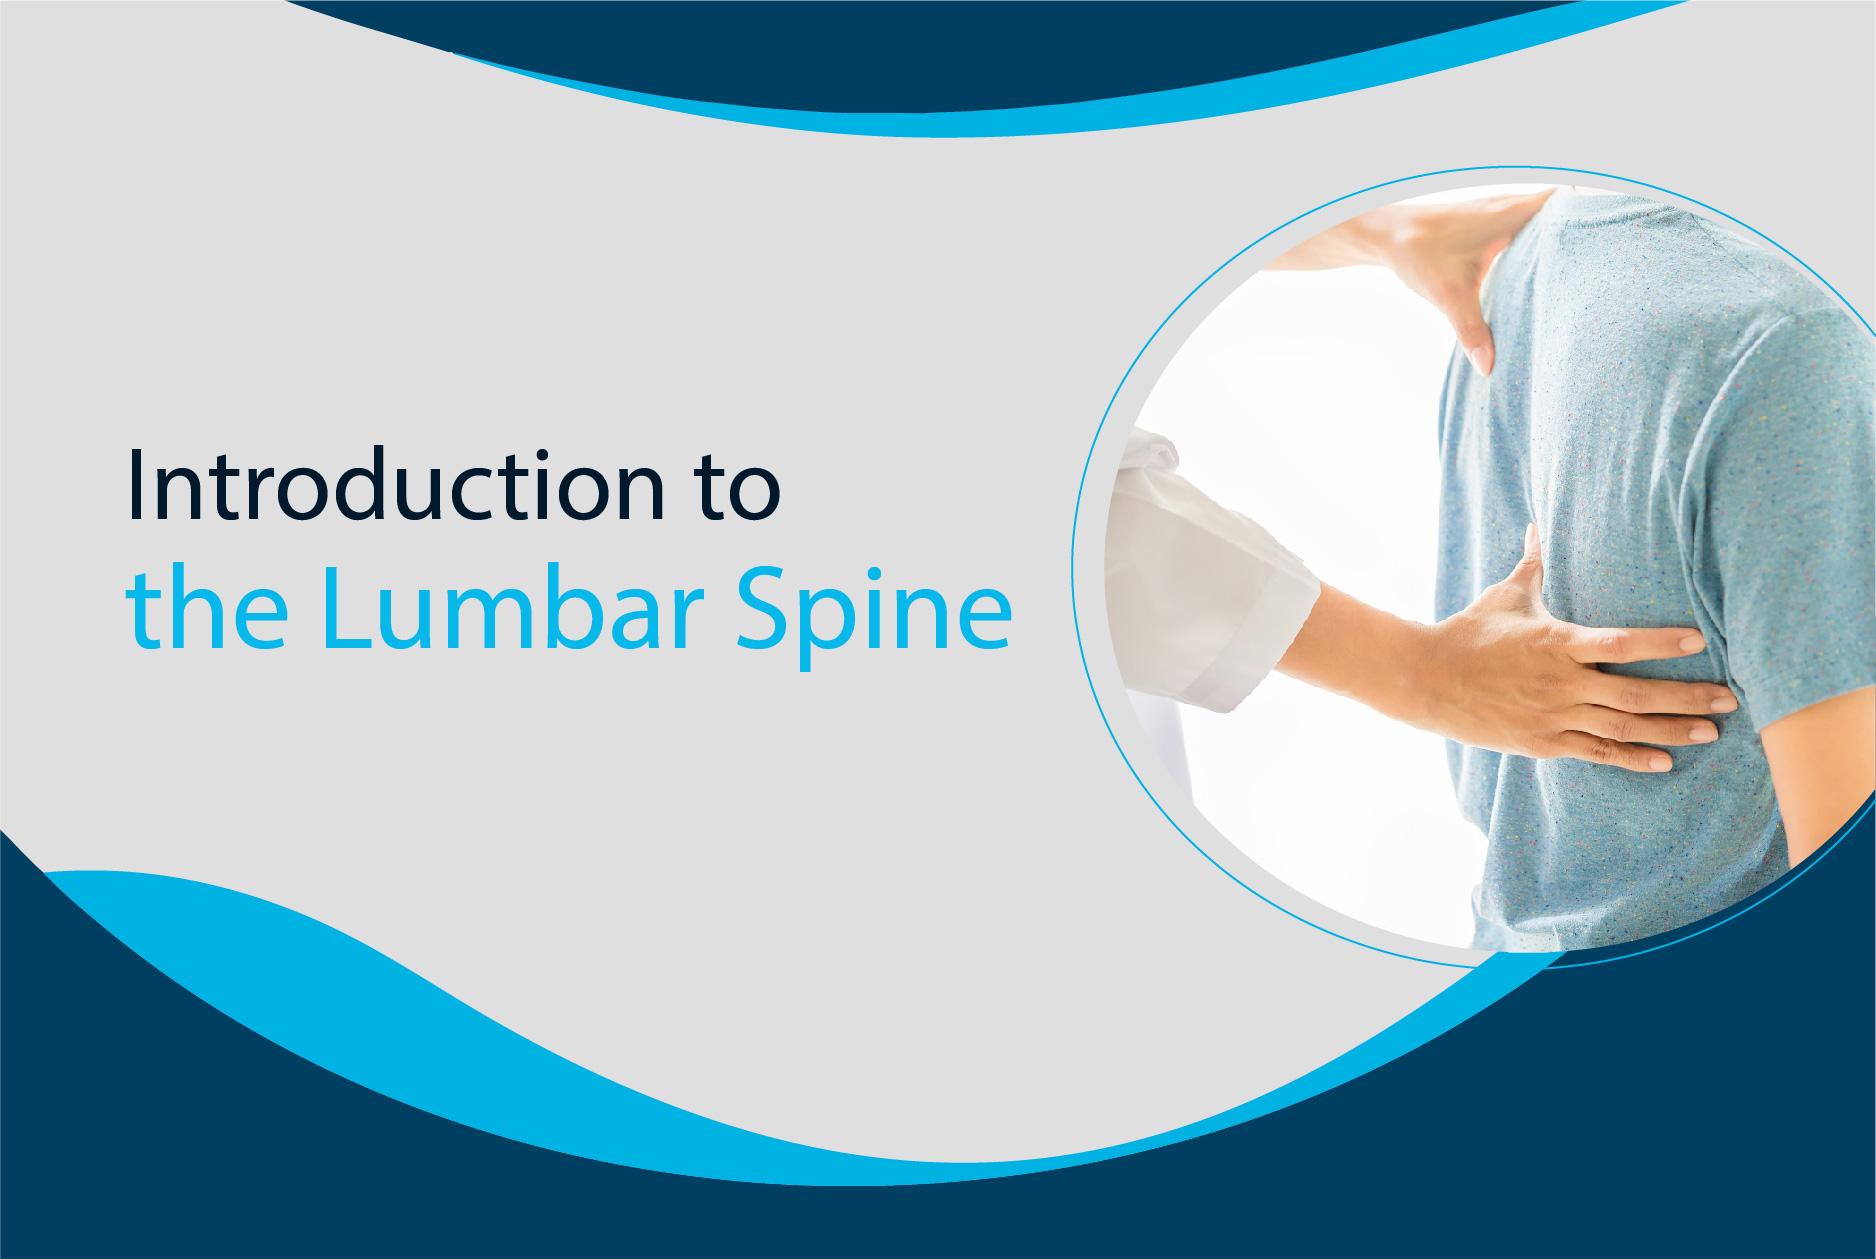 Introduction to the Lumbar Spine